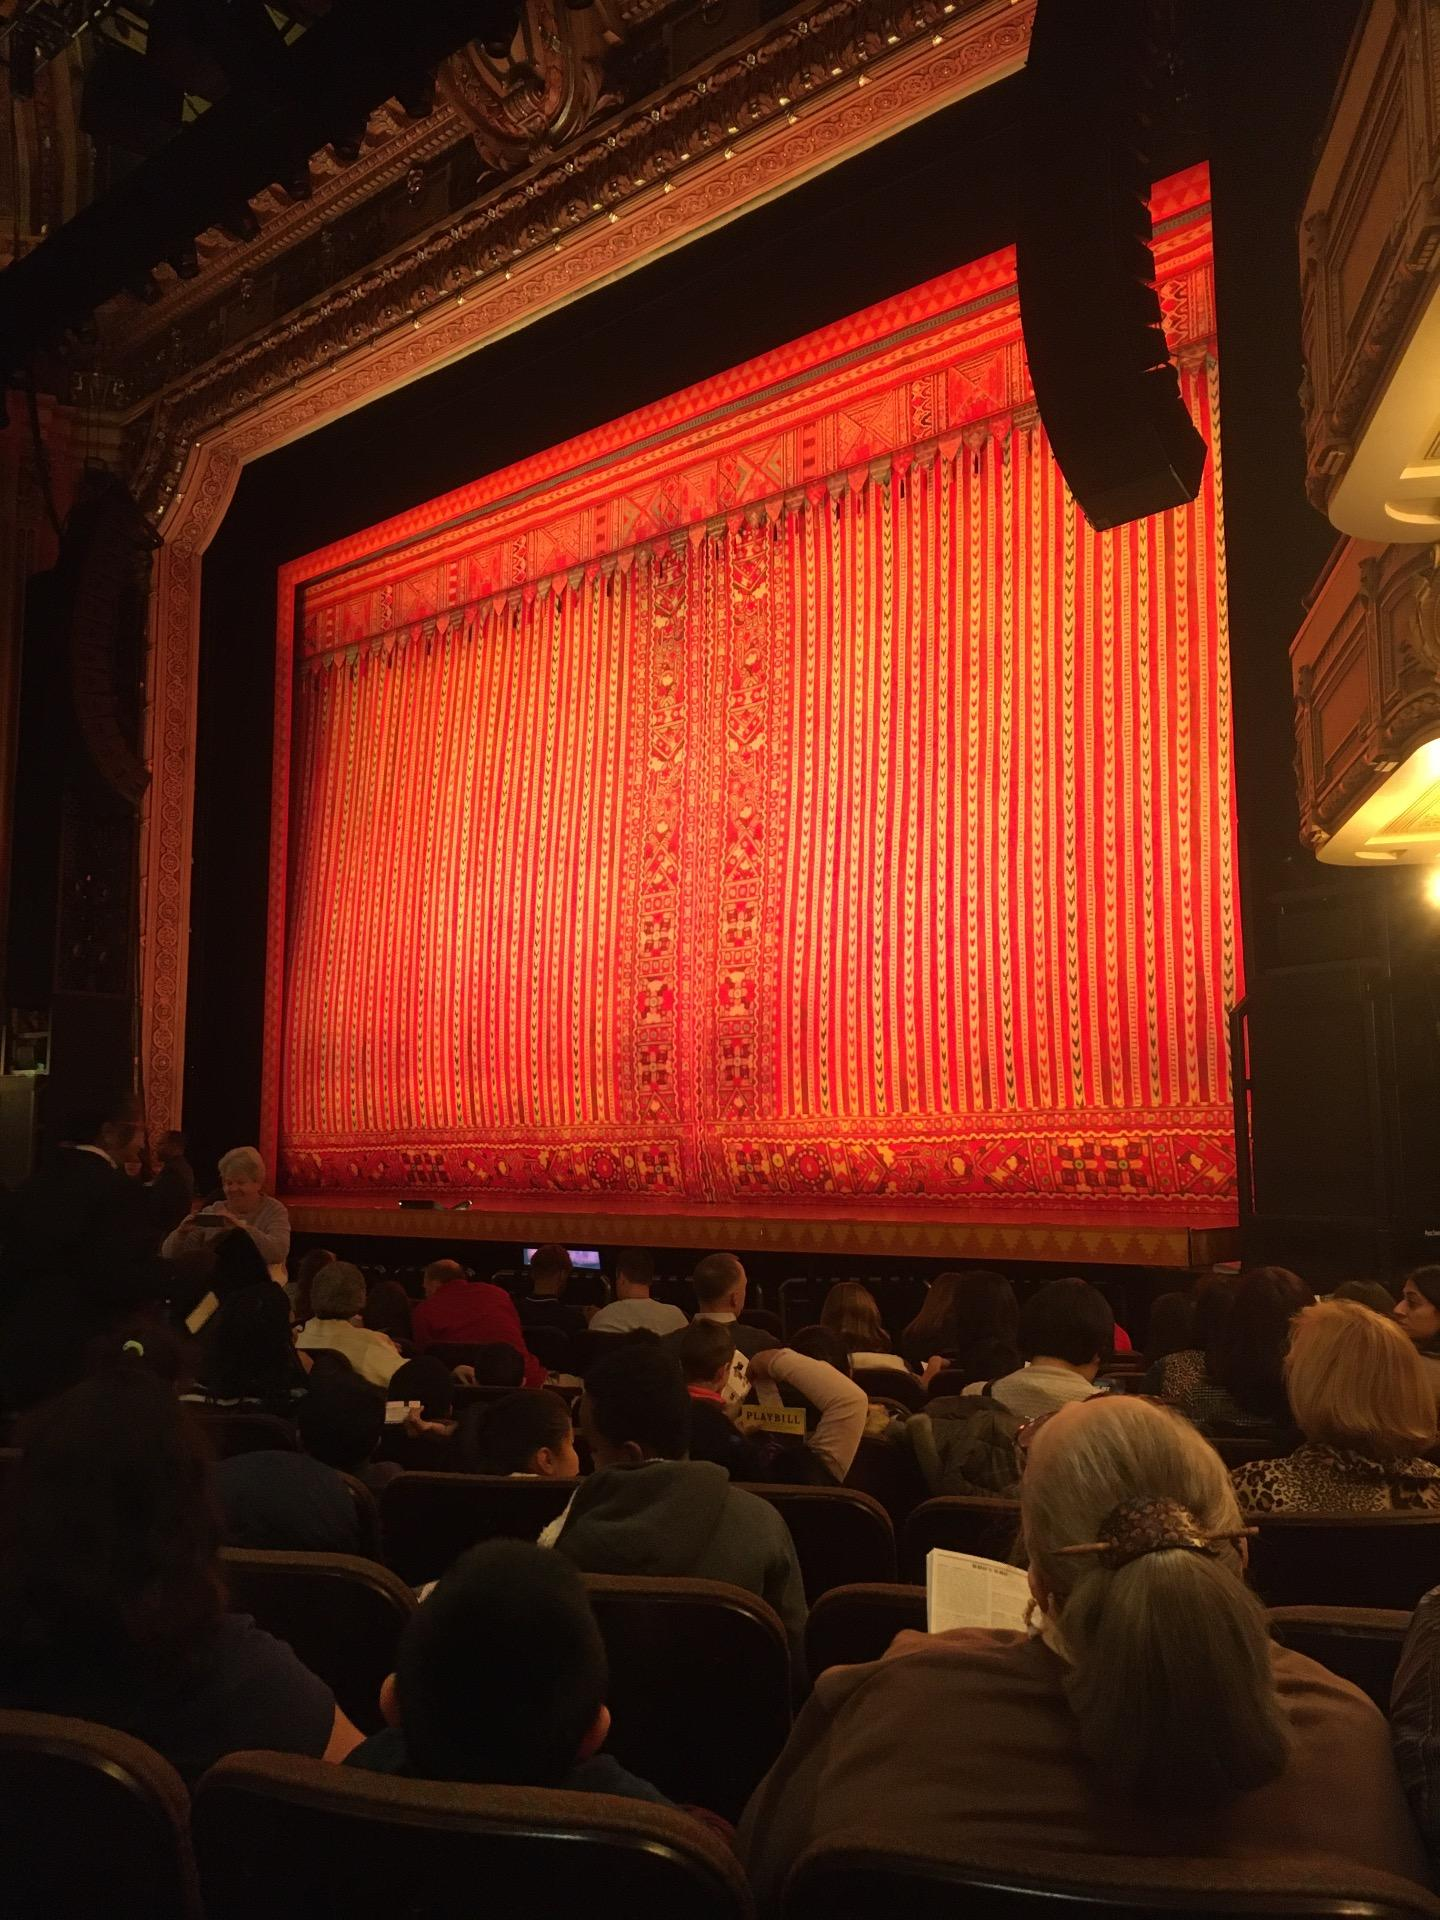 Hippodrome Theatre Section Right orchestra Row M Seat 20 and 22